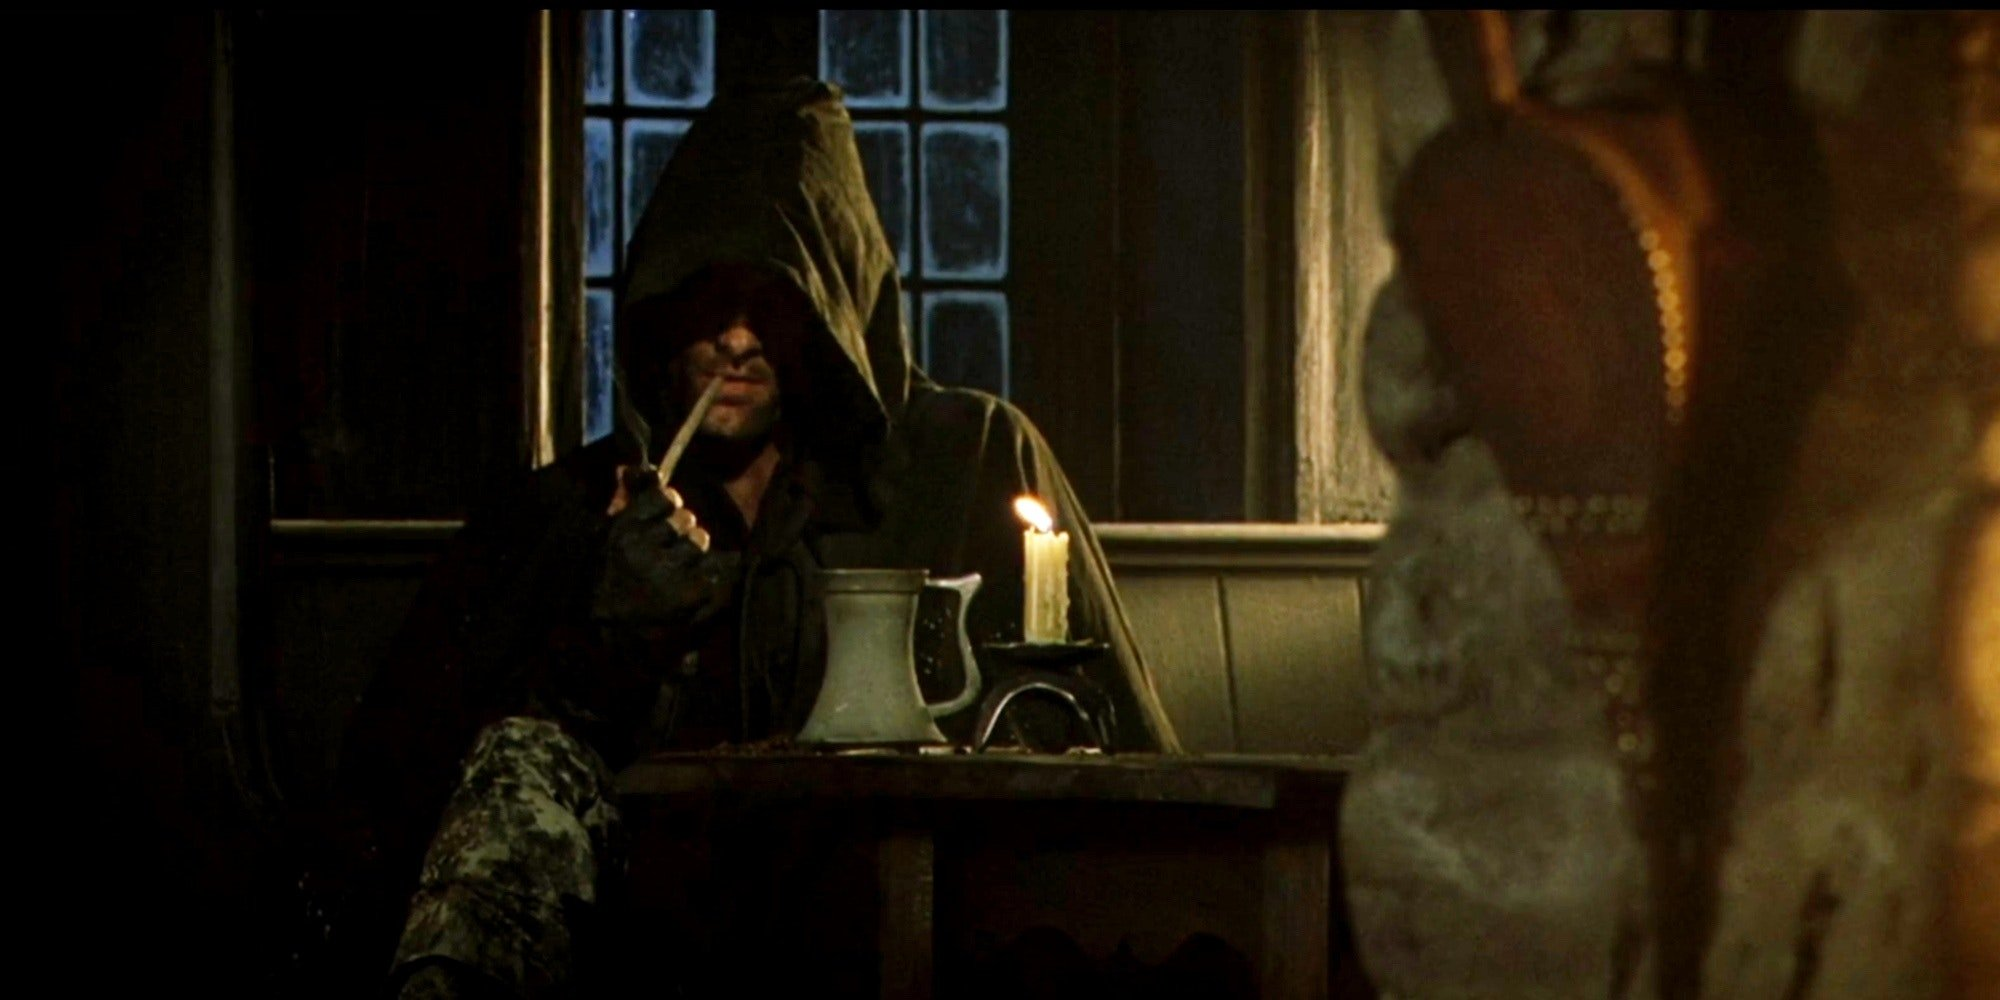 an image from lord of the rings showing aragorn (Viggo Mortensen) in the bar.